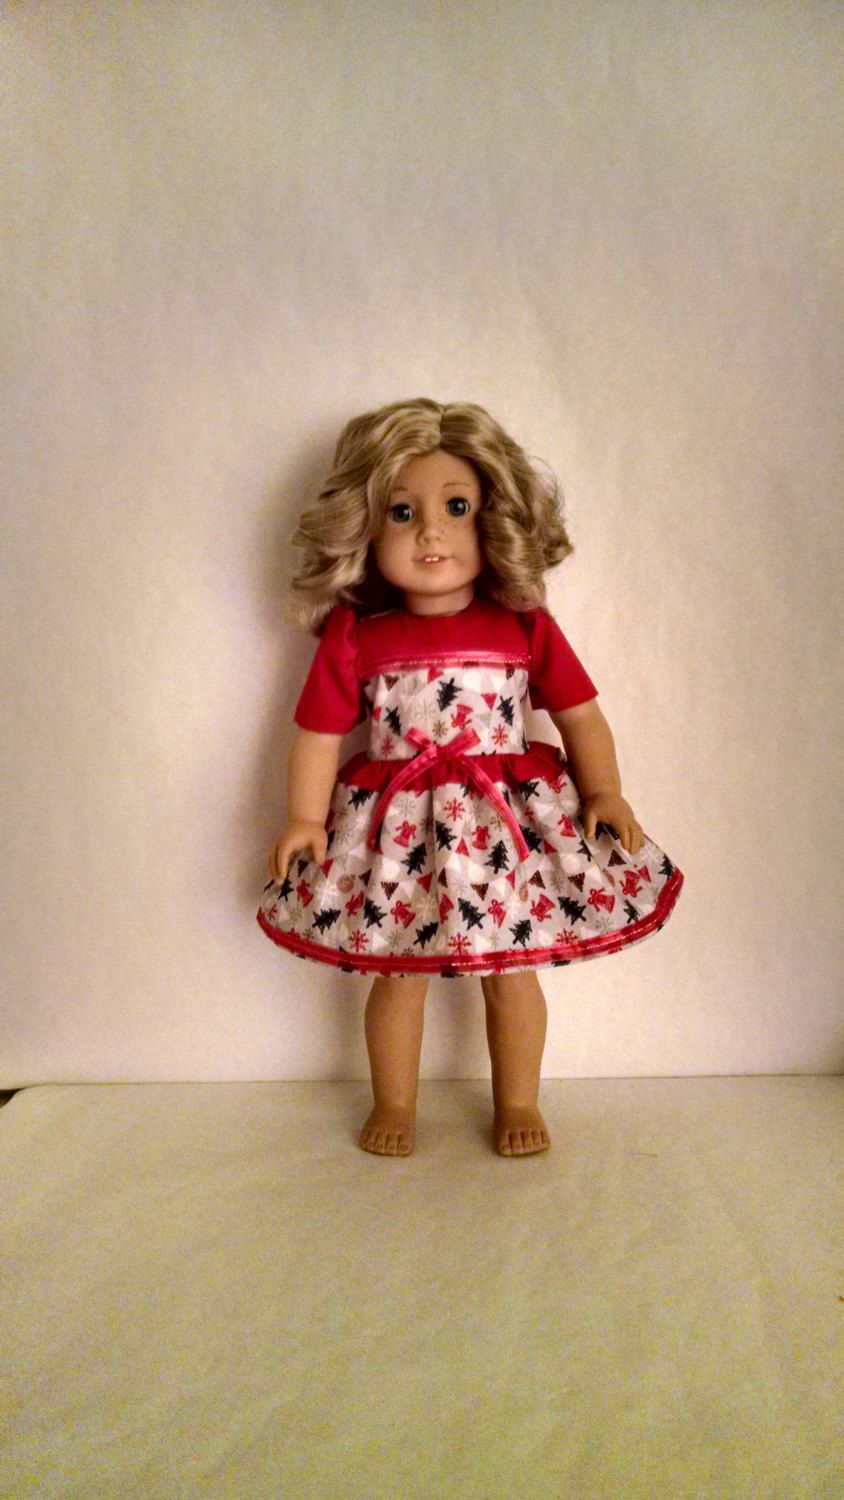 Pink dress for girl   inch Doll Clothes handmade to fit American Girl doll Christmas